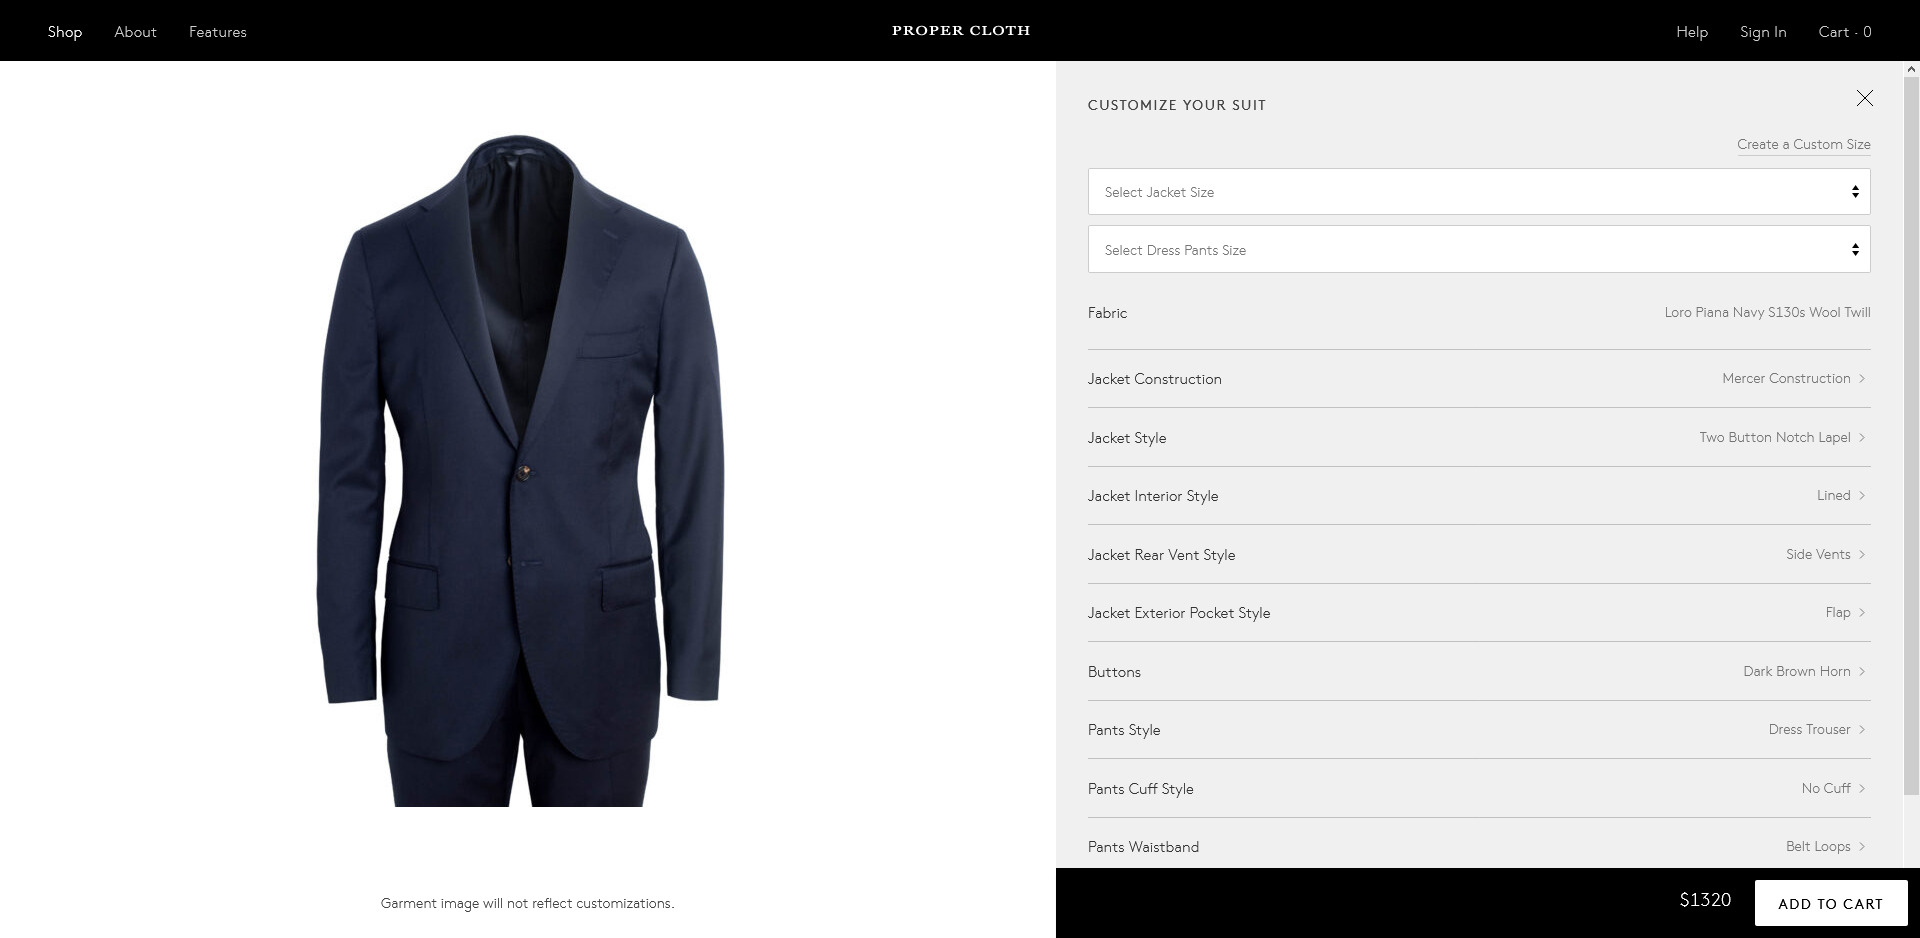 Proper Cloth made-to-measure suit style and design options